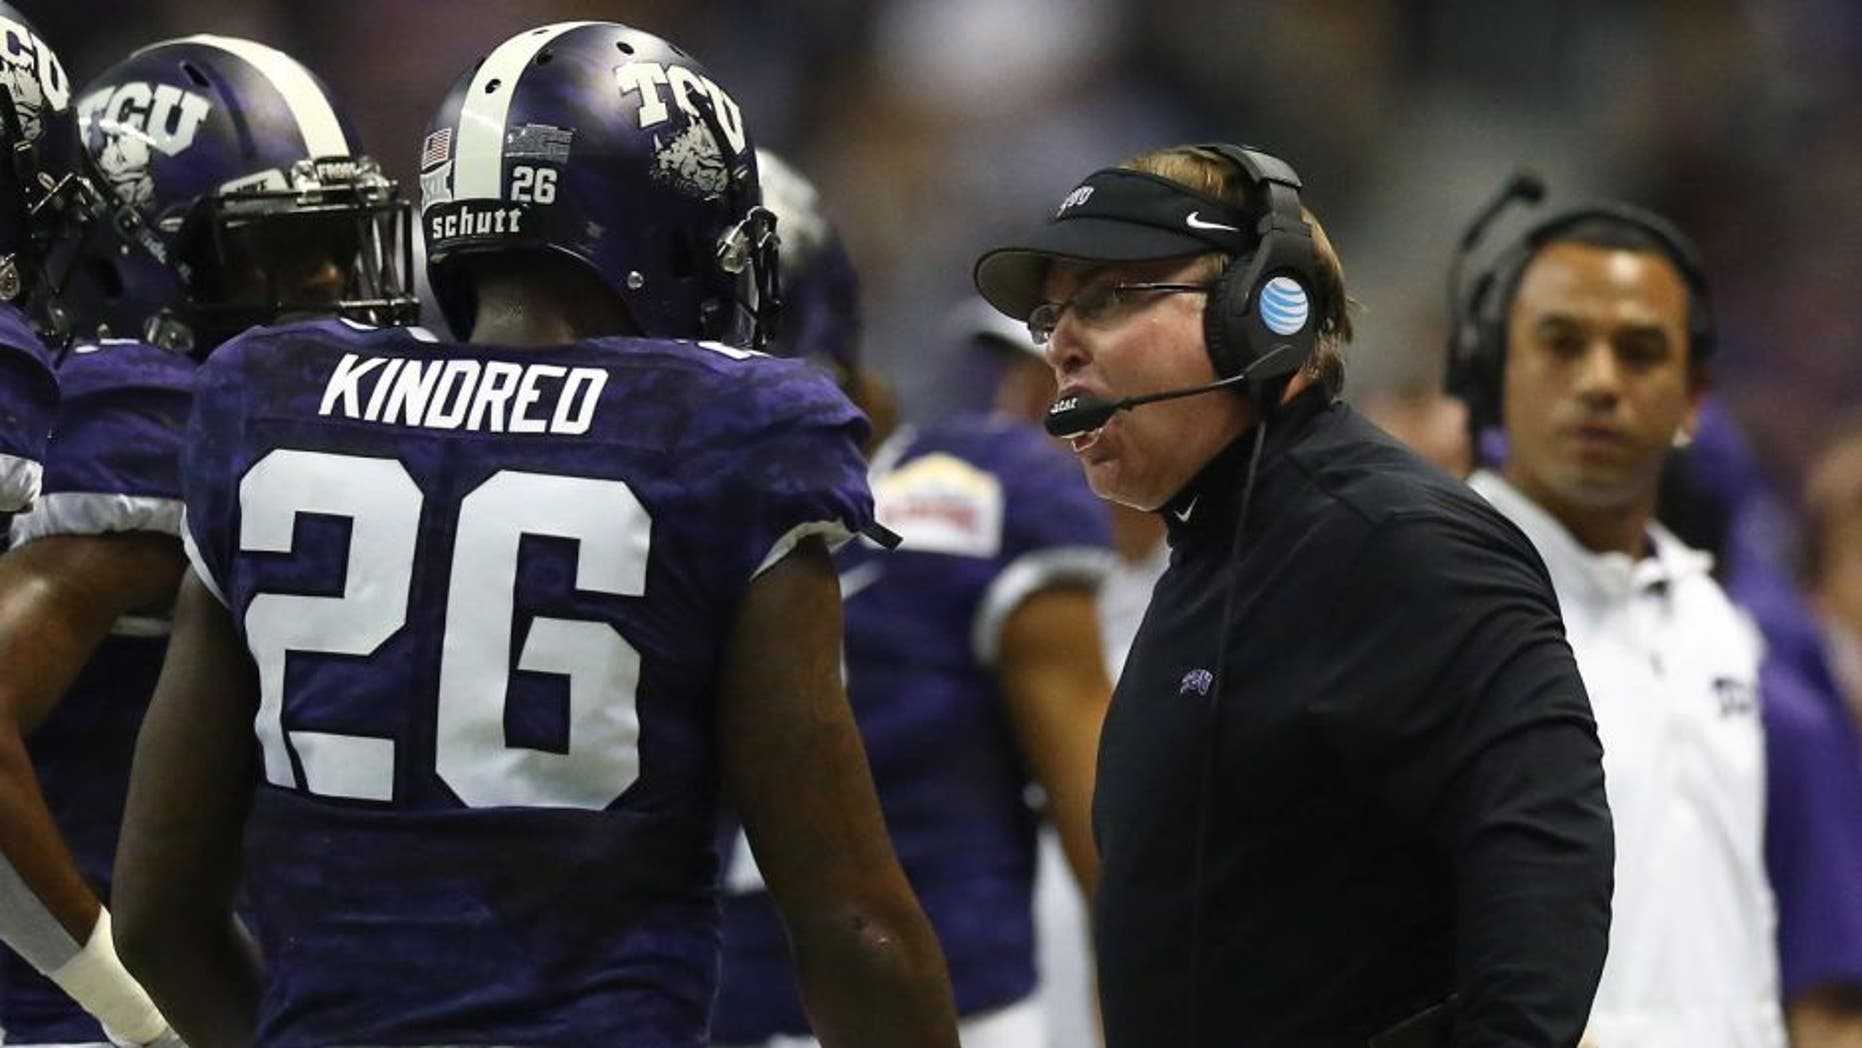 SAN ANTONIO, TX - JANUARY 02: Head coach Gary Patterson of the TCU Horned Frogs talks with Derrick Kindred #26 during the Valero Alamo Bowl at Alamodome on January 2, 2016 in San Antonio, Texas. (Photo by Ronald Martinez/Getty Images)